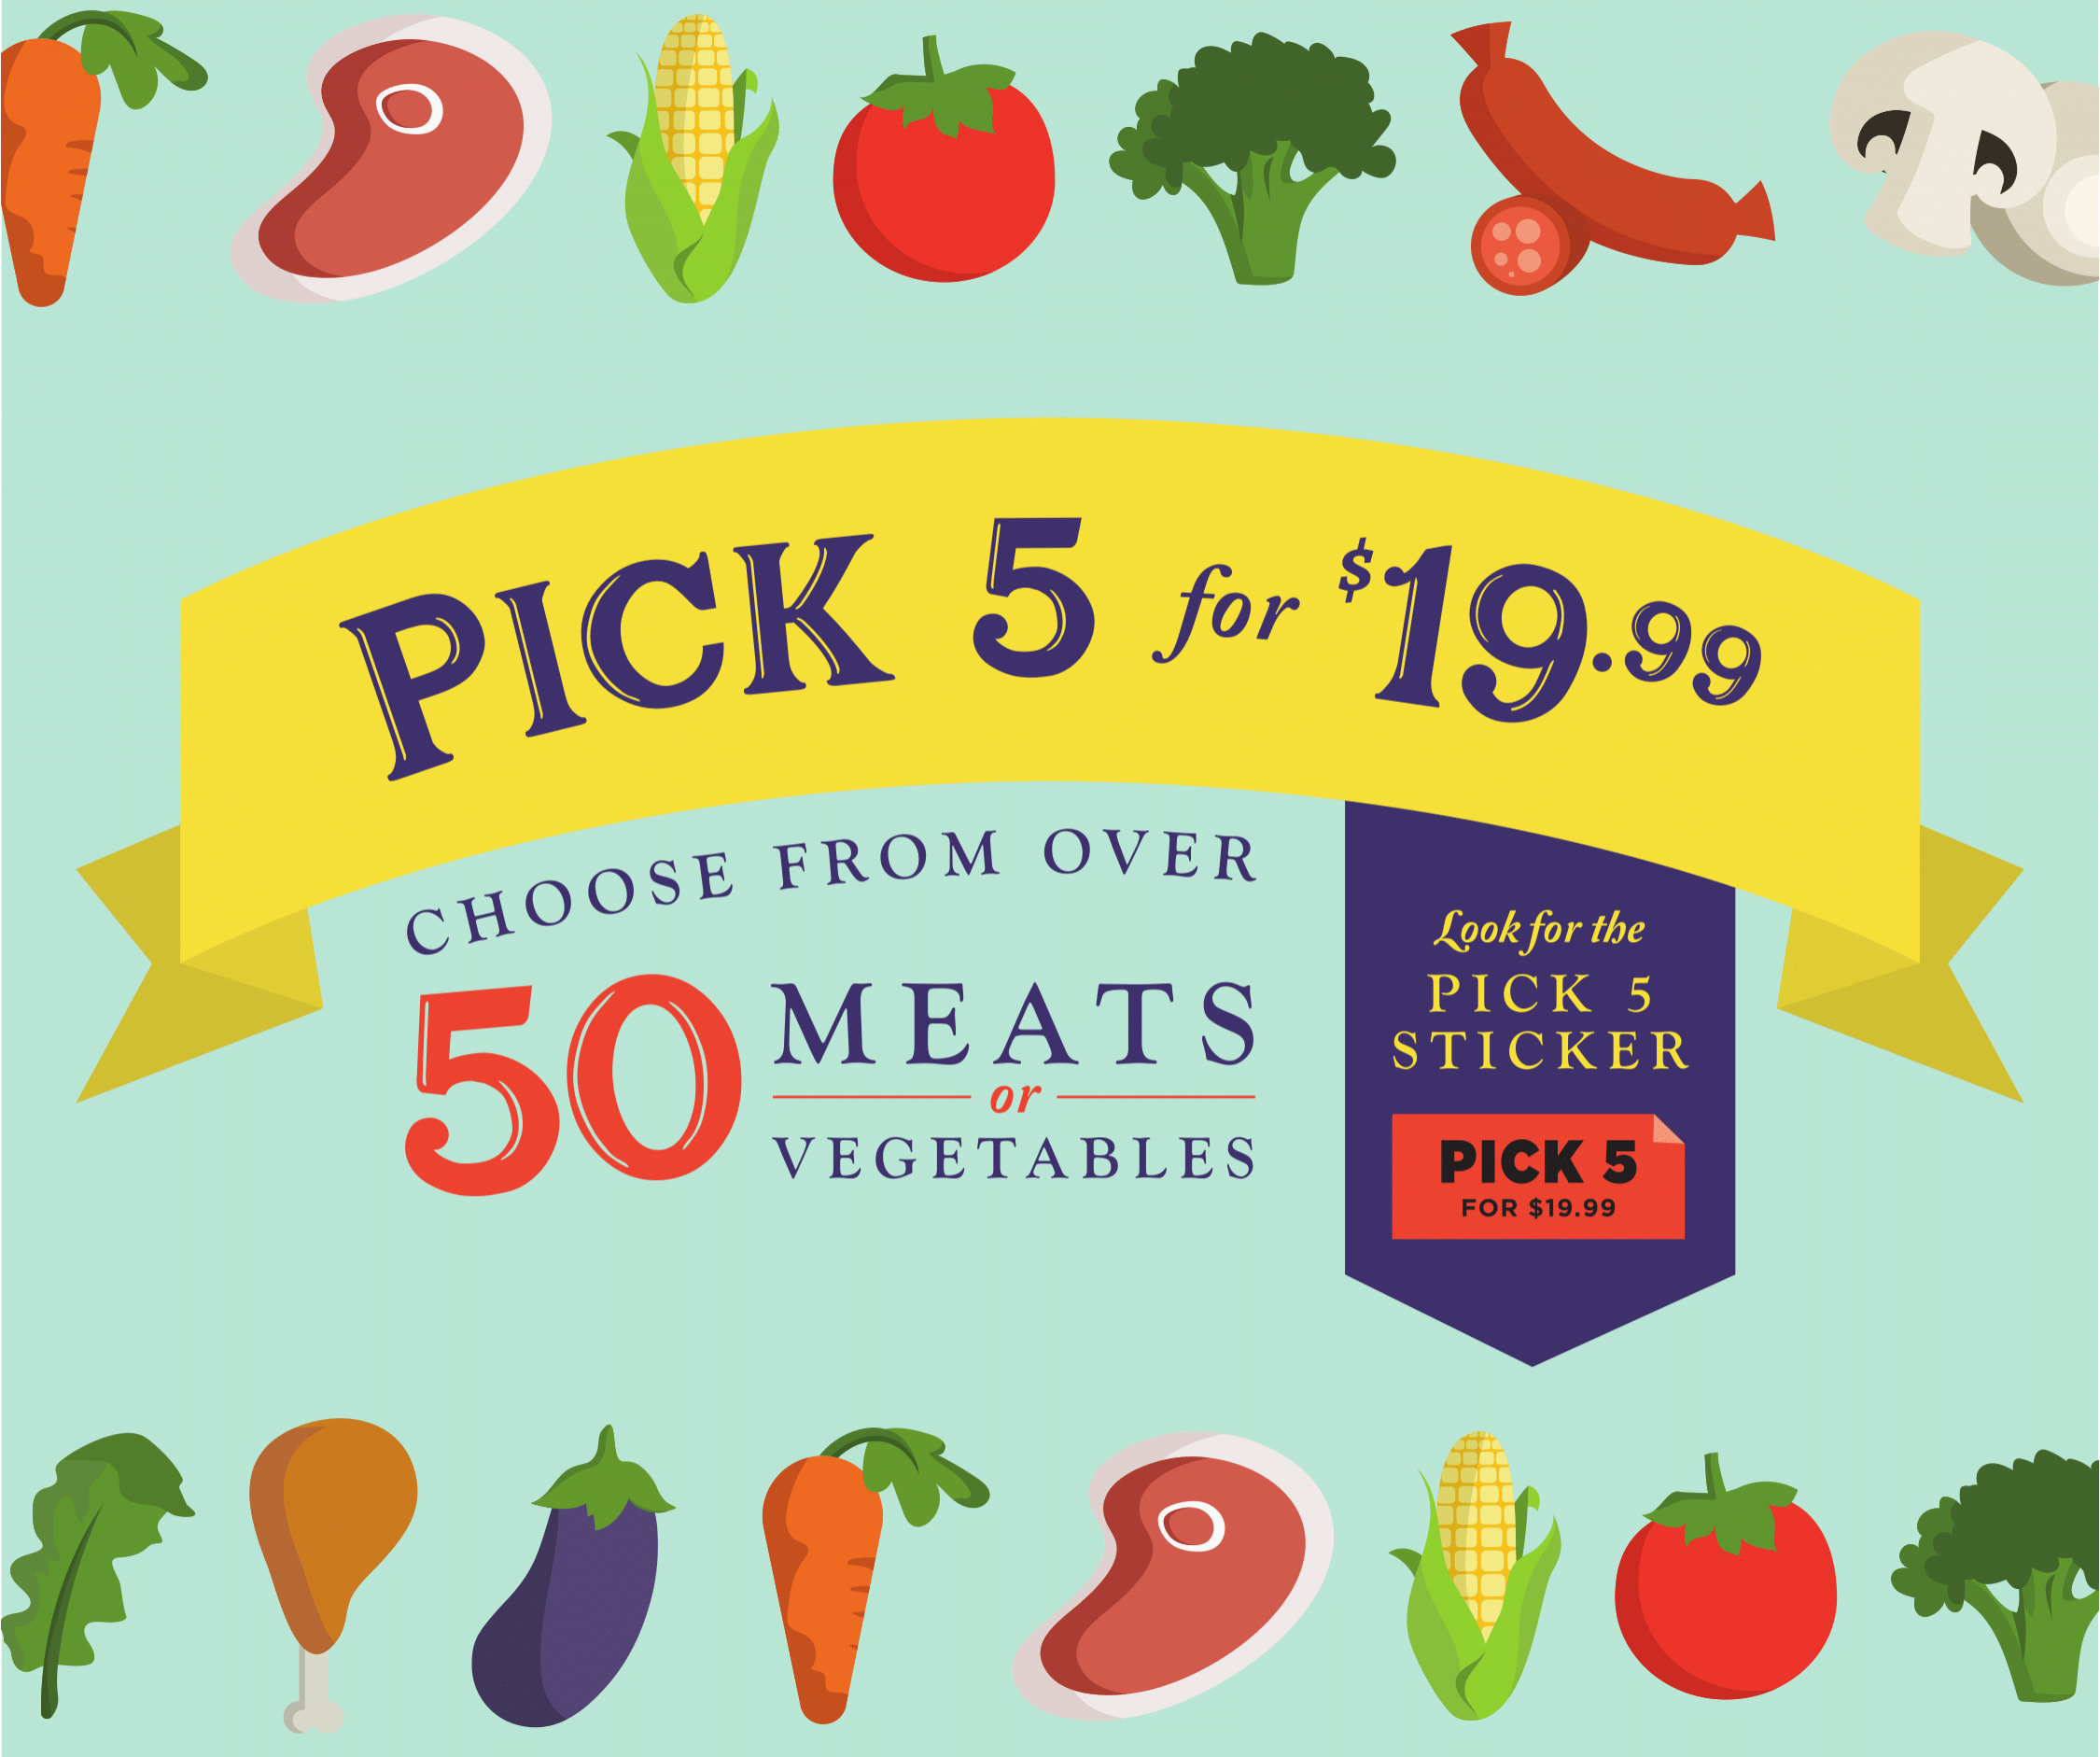 Five and thrive... - Choose any 5 from over 50 meats and vegetables. All for $19.99. Look for the orange sticker!